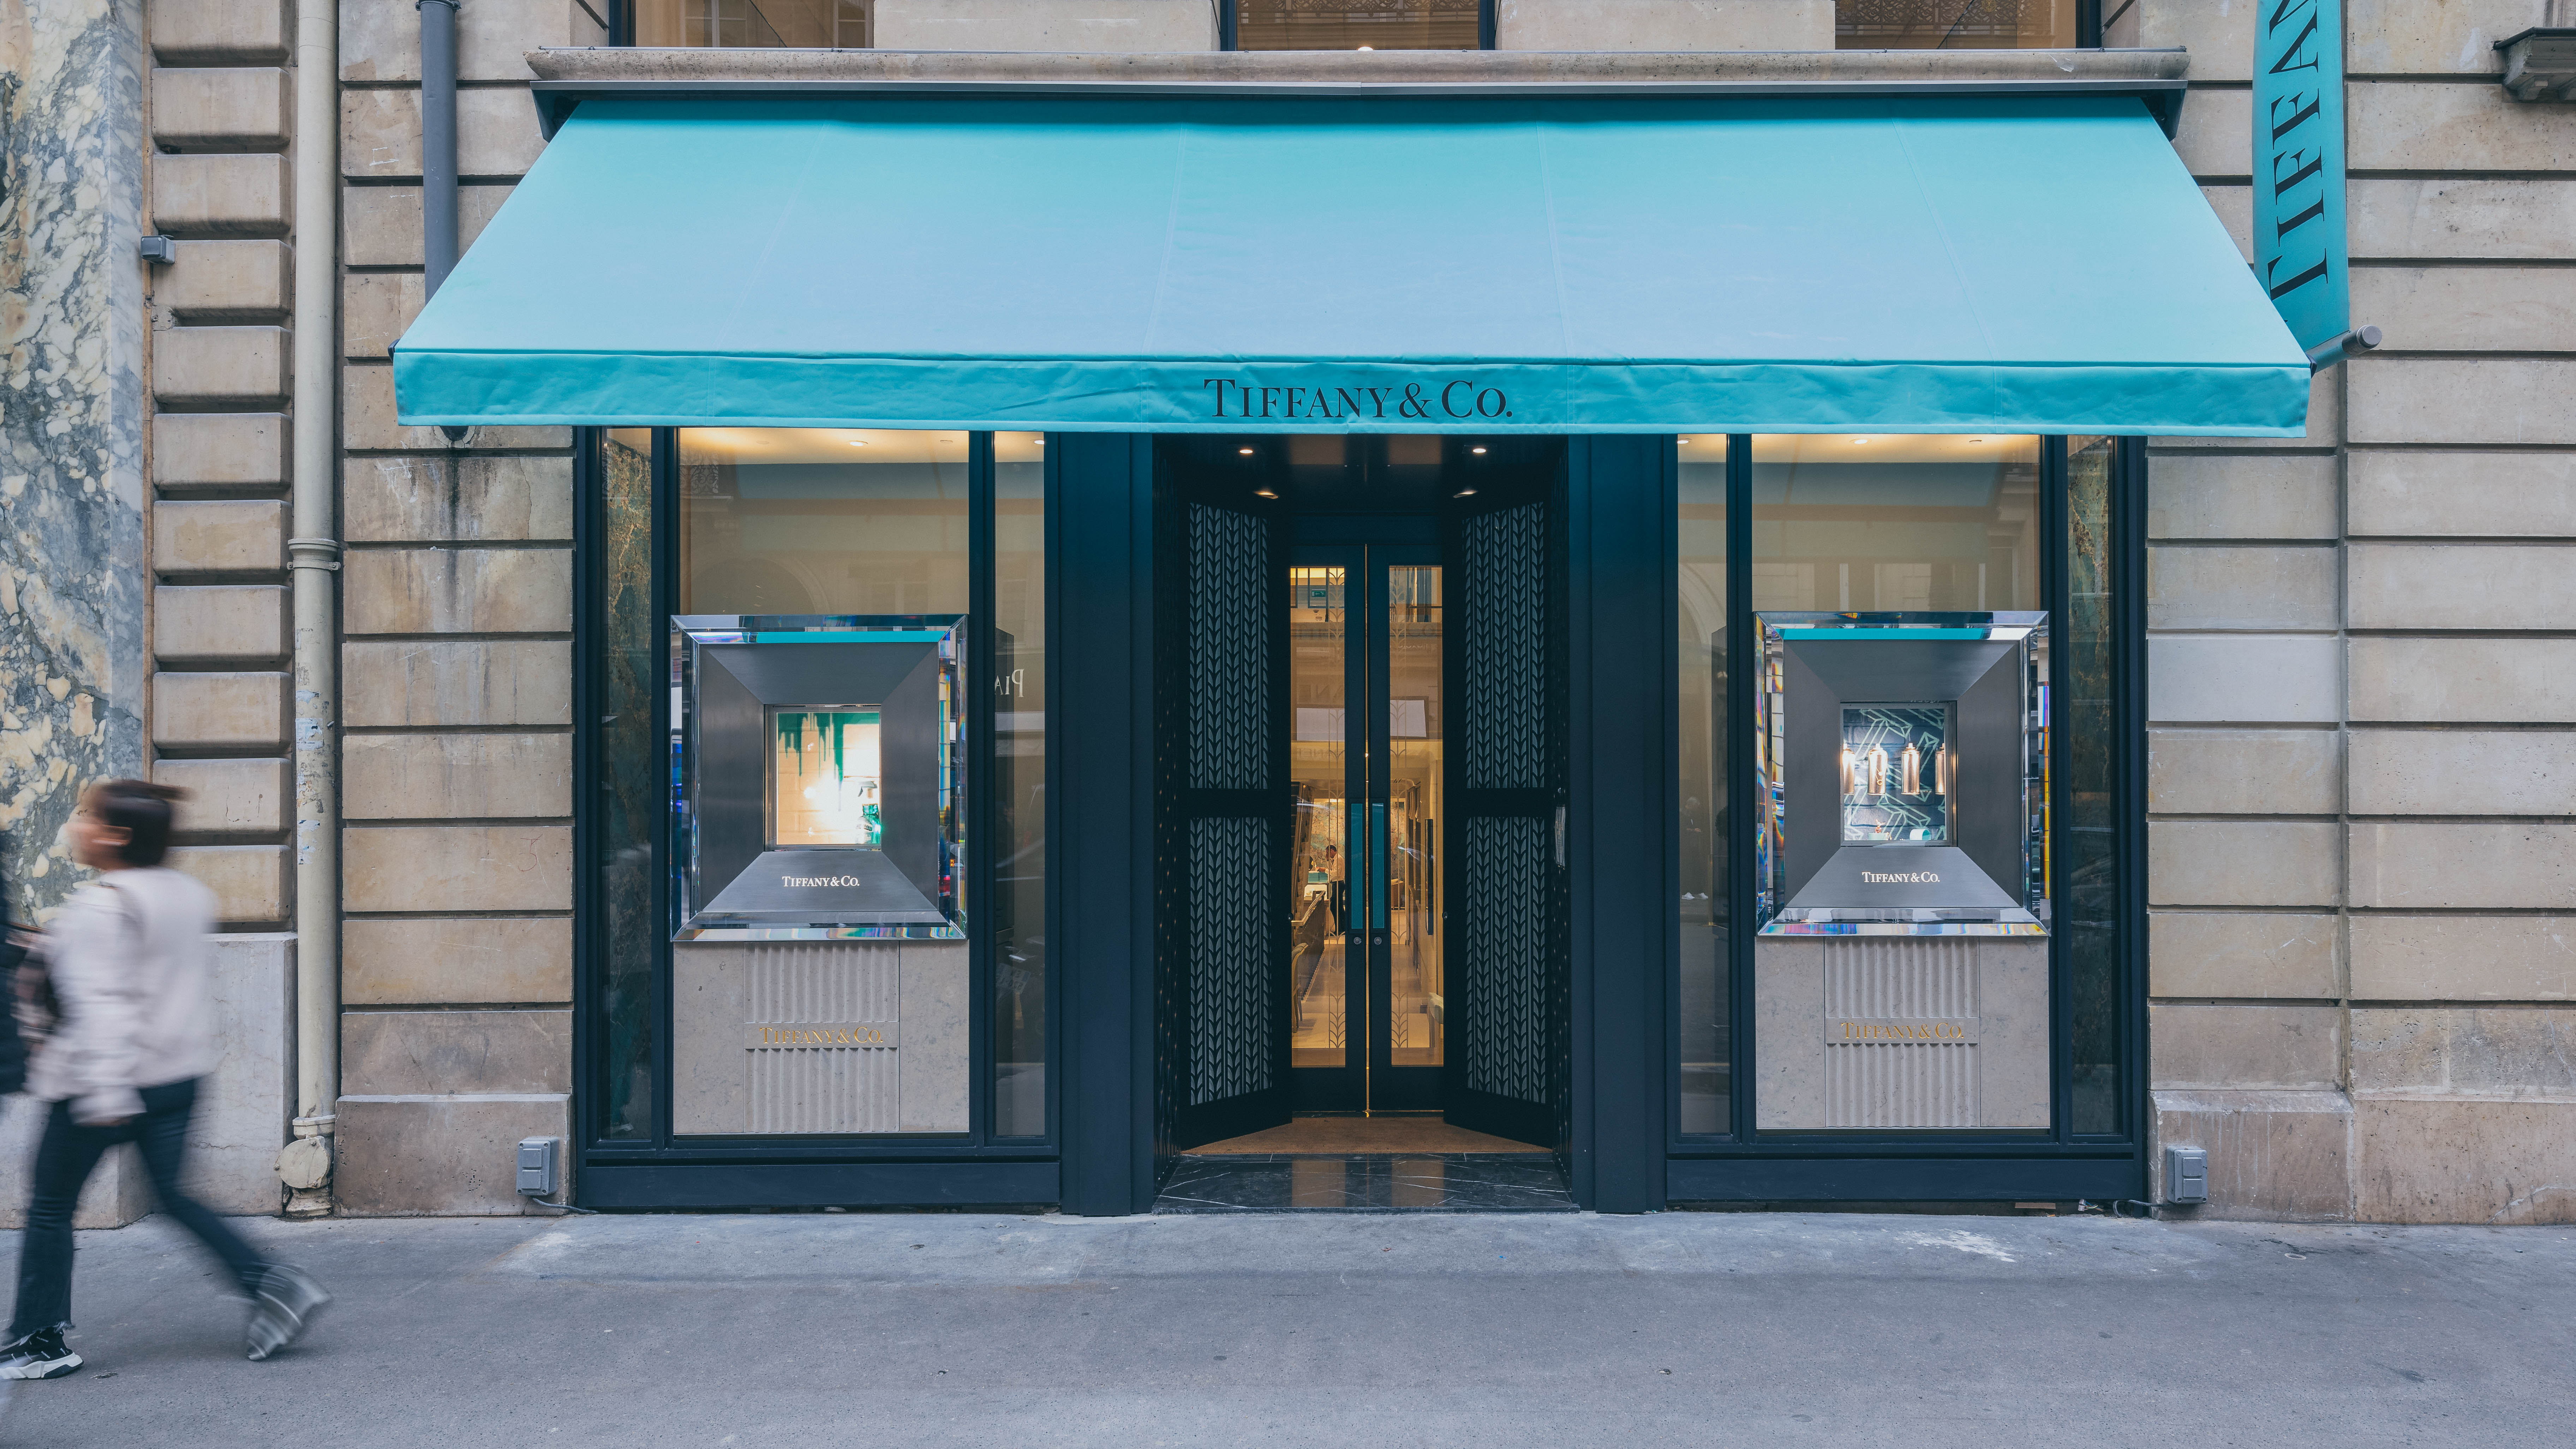 An exterior shot of a Tiffany & Co retail store